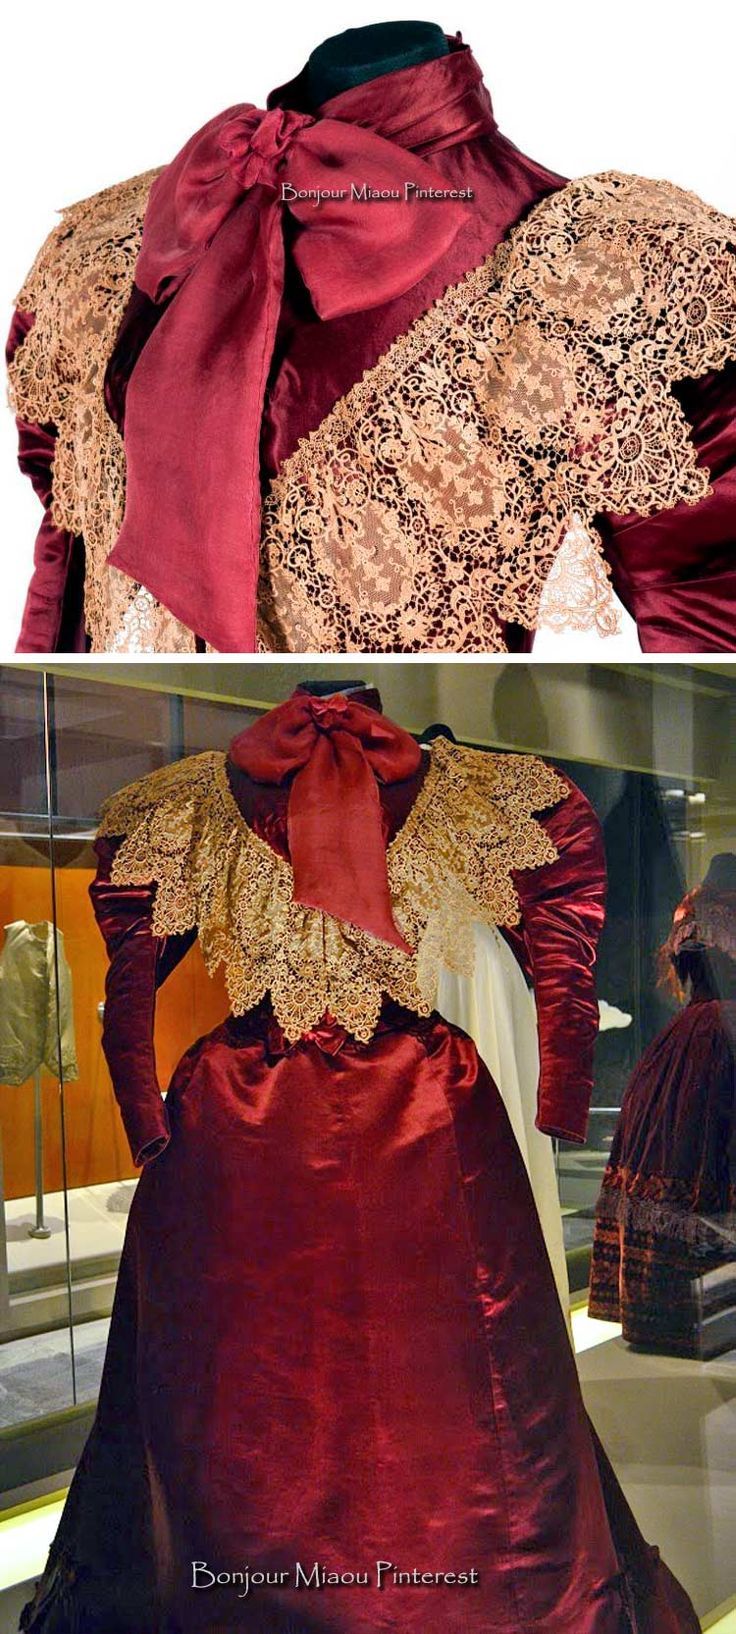 Dress, Mon Kerewa Soeurs, France, ca. 1890. Handmade in silk satin, lace, and chiffon. Photos: Omar Dumaine (top); Héctor Montaño, INAH (bottom). From exhibit Hilos de Historia by the Museum of Mexican History via Castillo Chapultepec Twitter and the Mercado Sobre Ruedas blog.